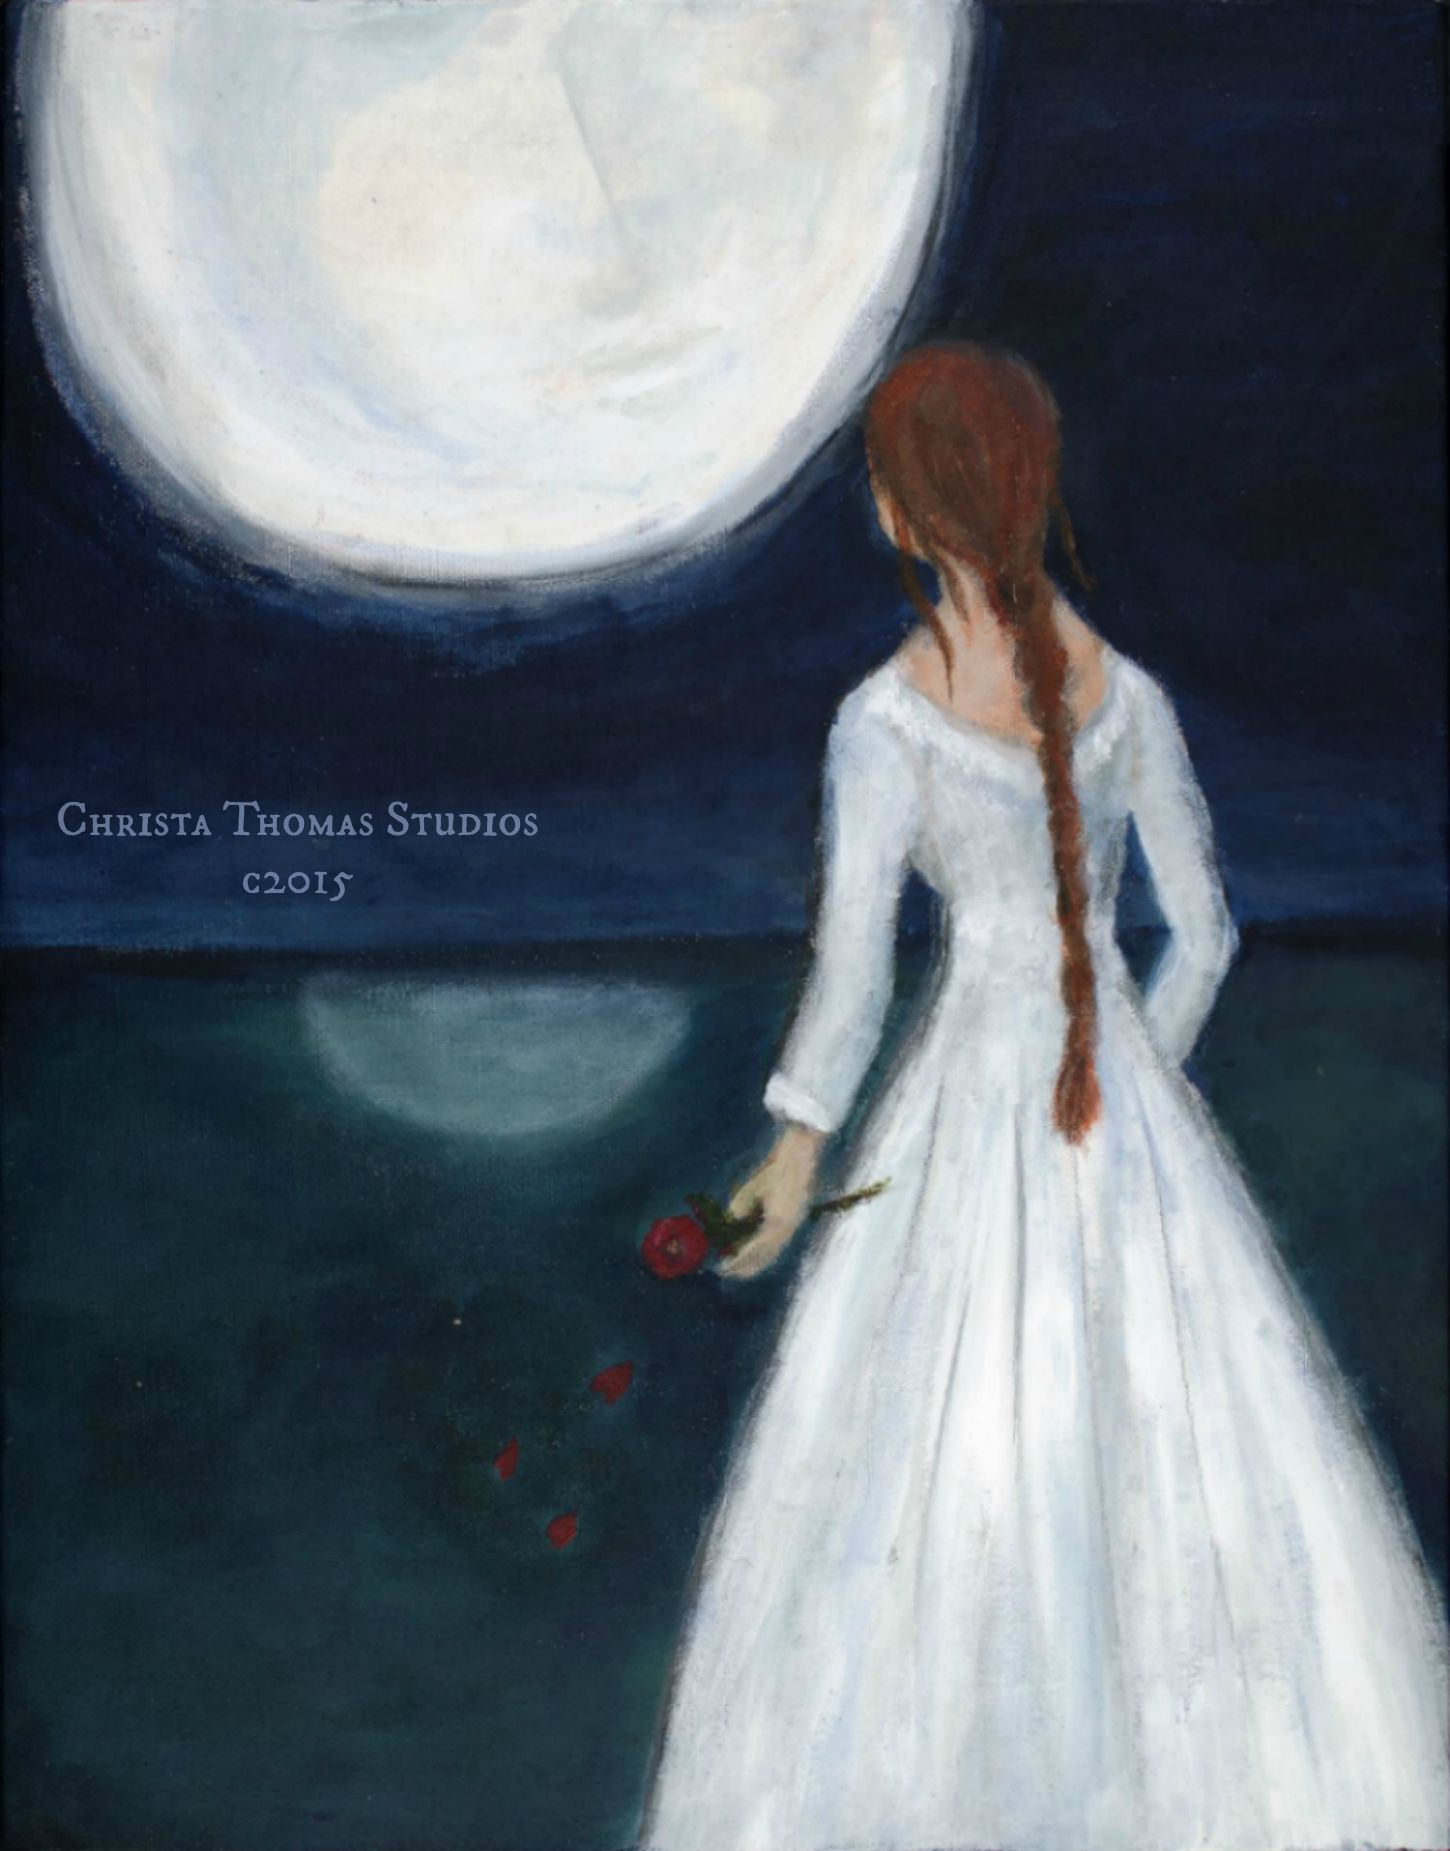 A Conversation With the Moon - limited edition giclee canvas